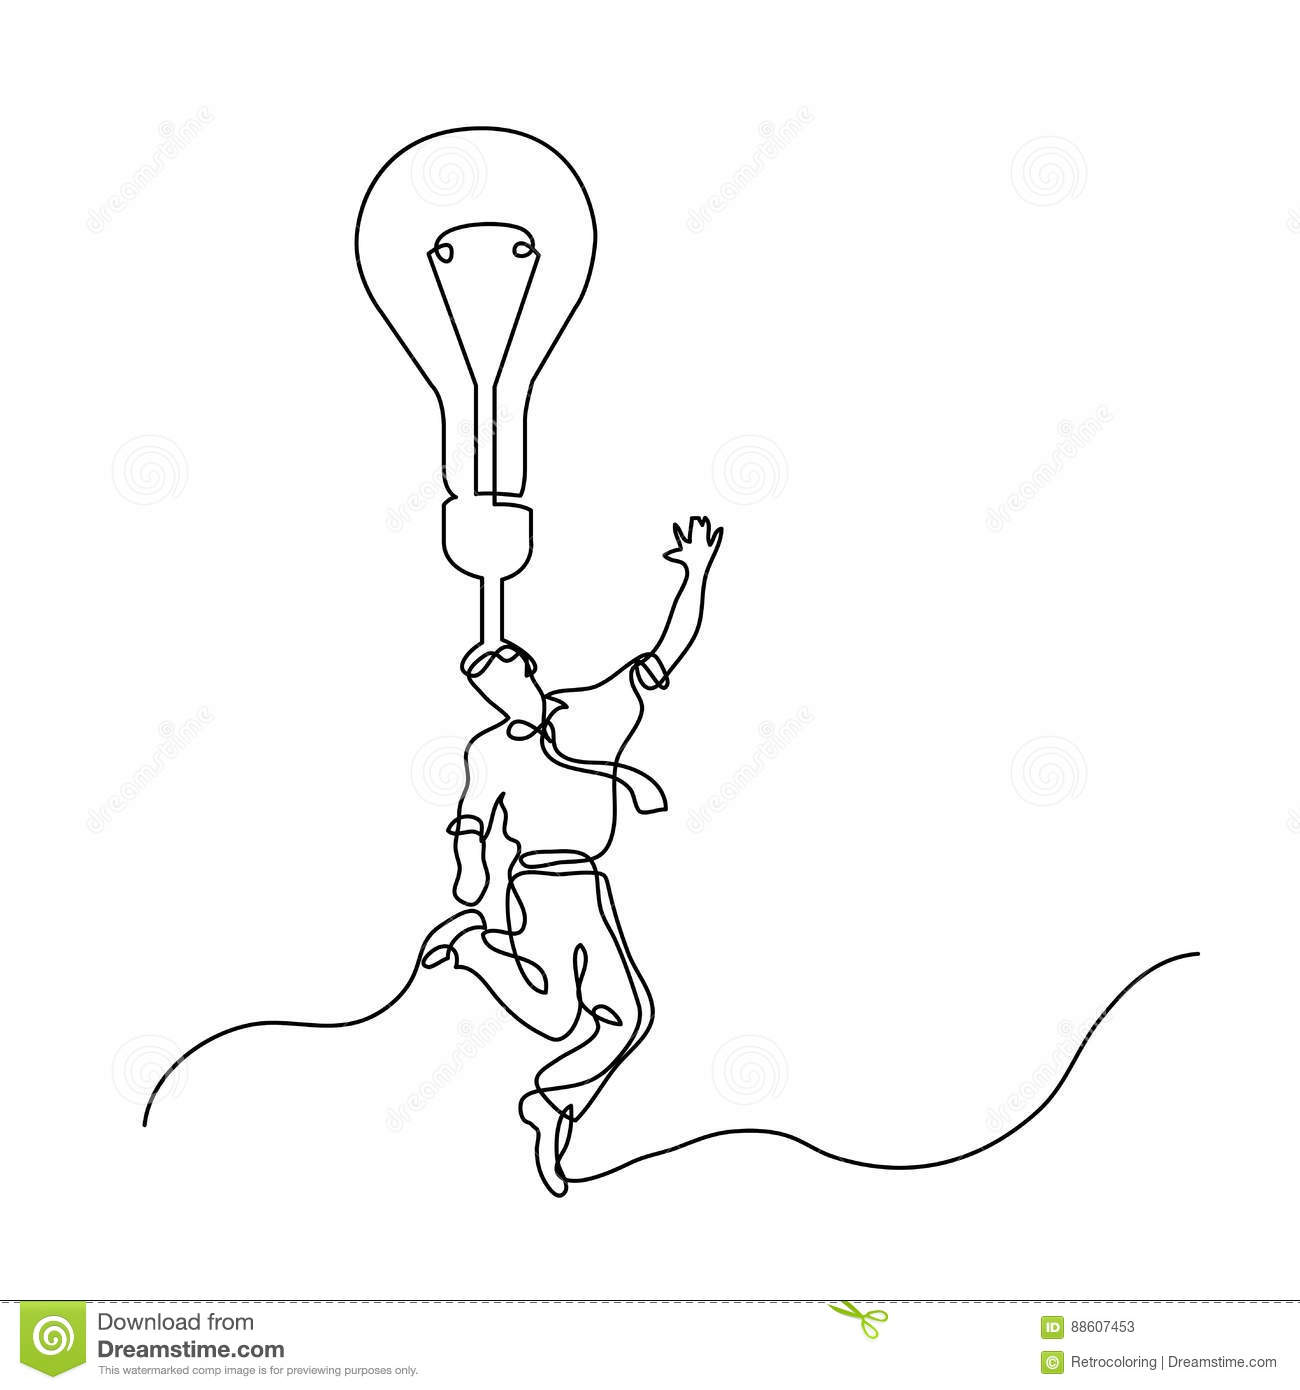 Continuous line drawing of happy businessman with brilliant idea